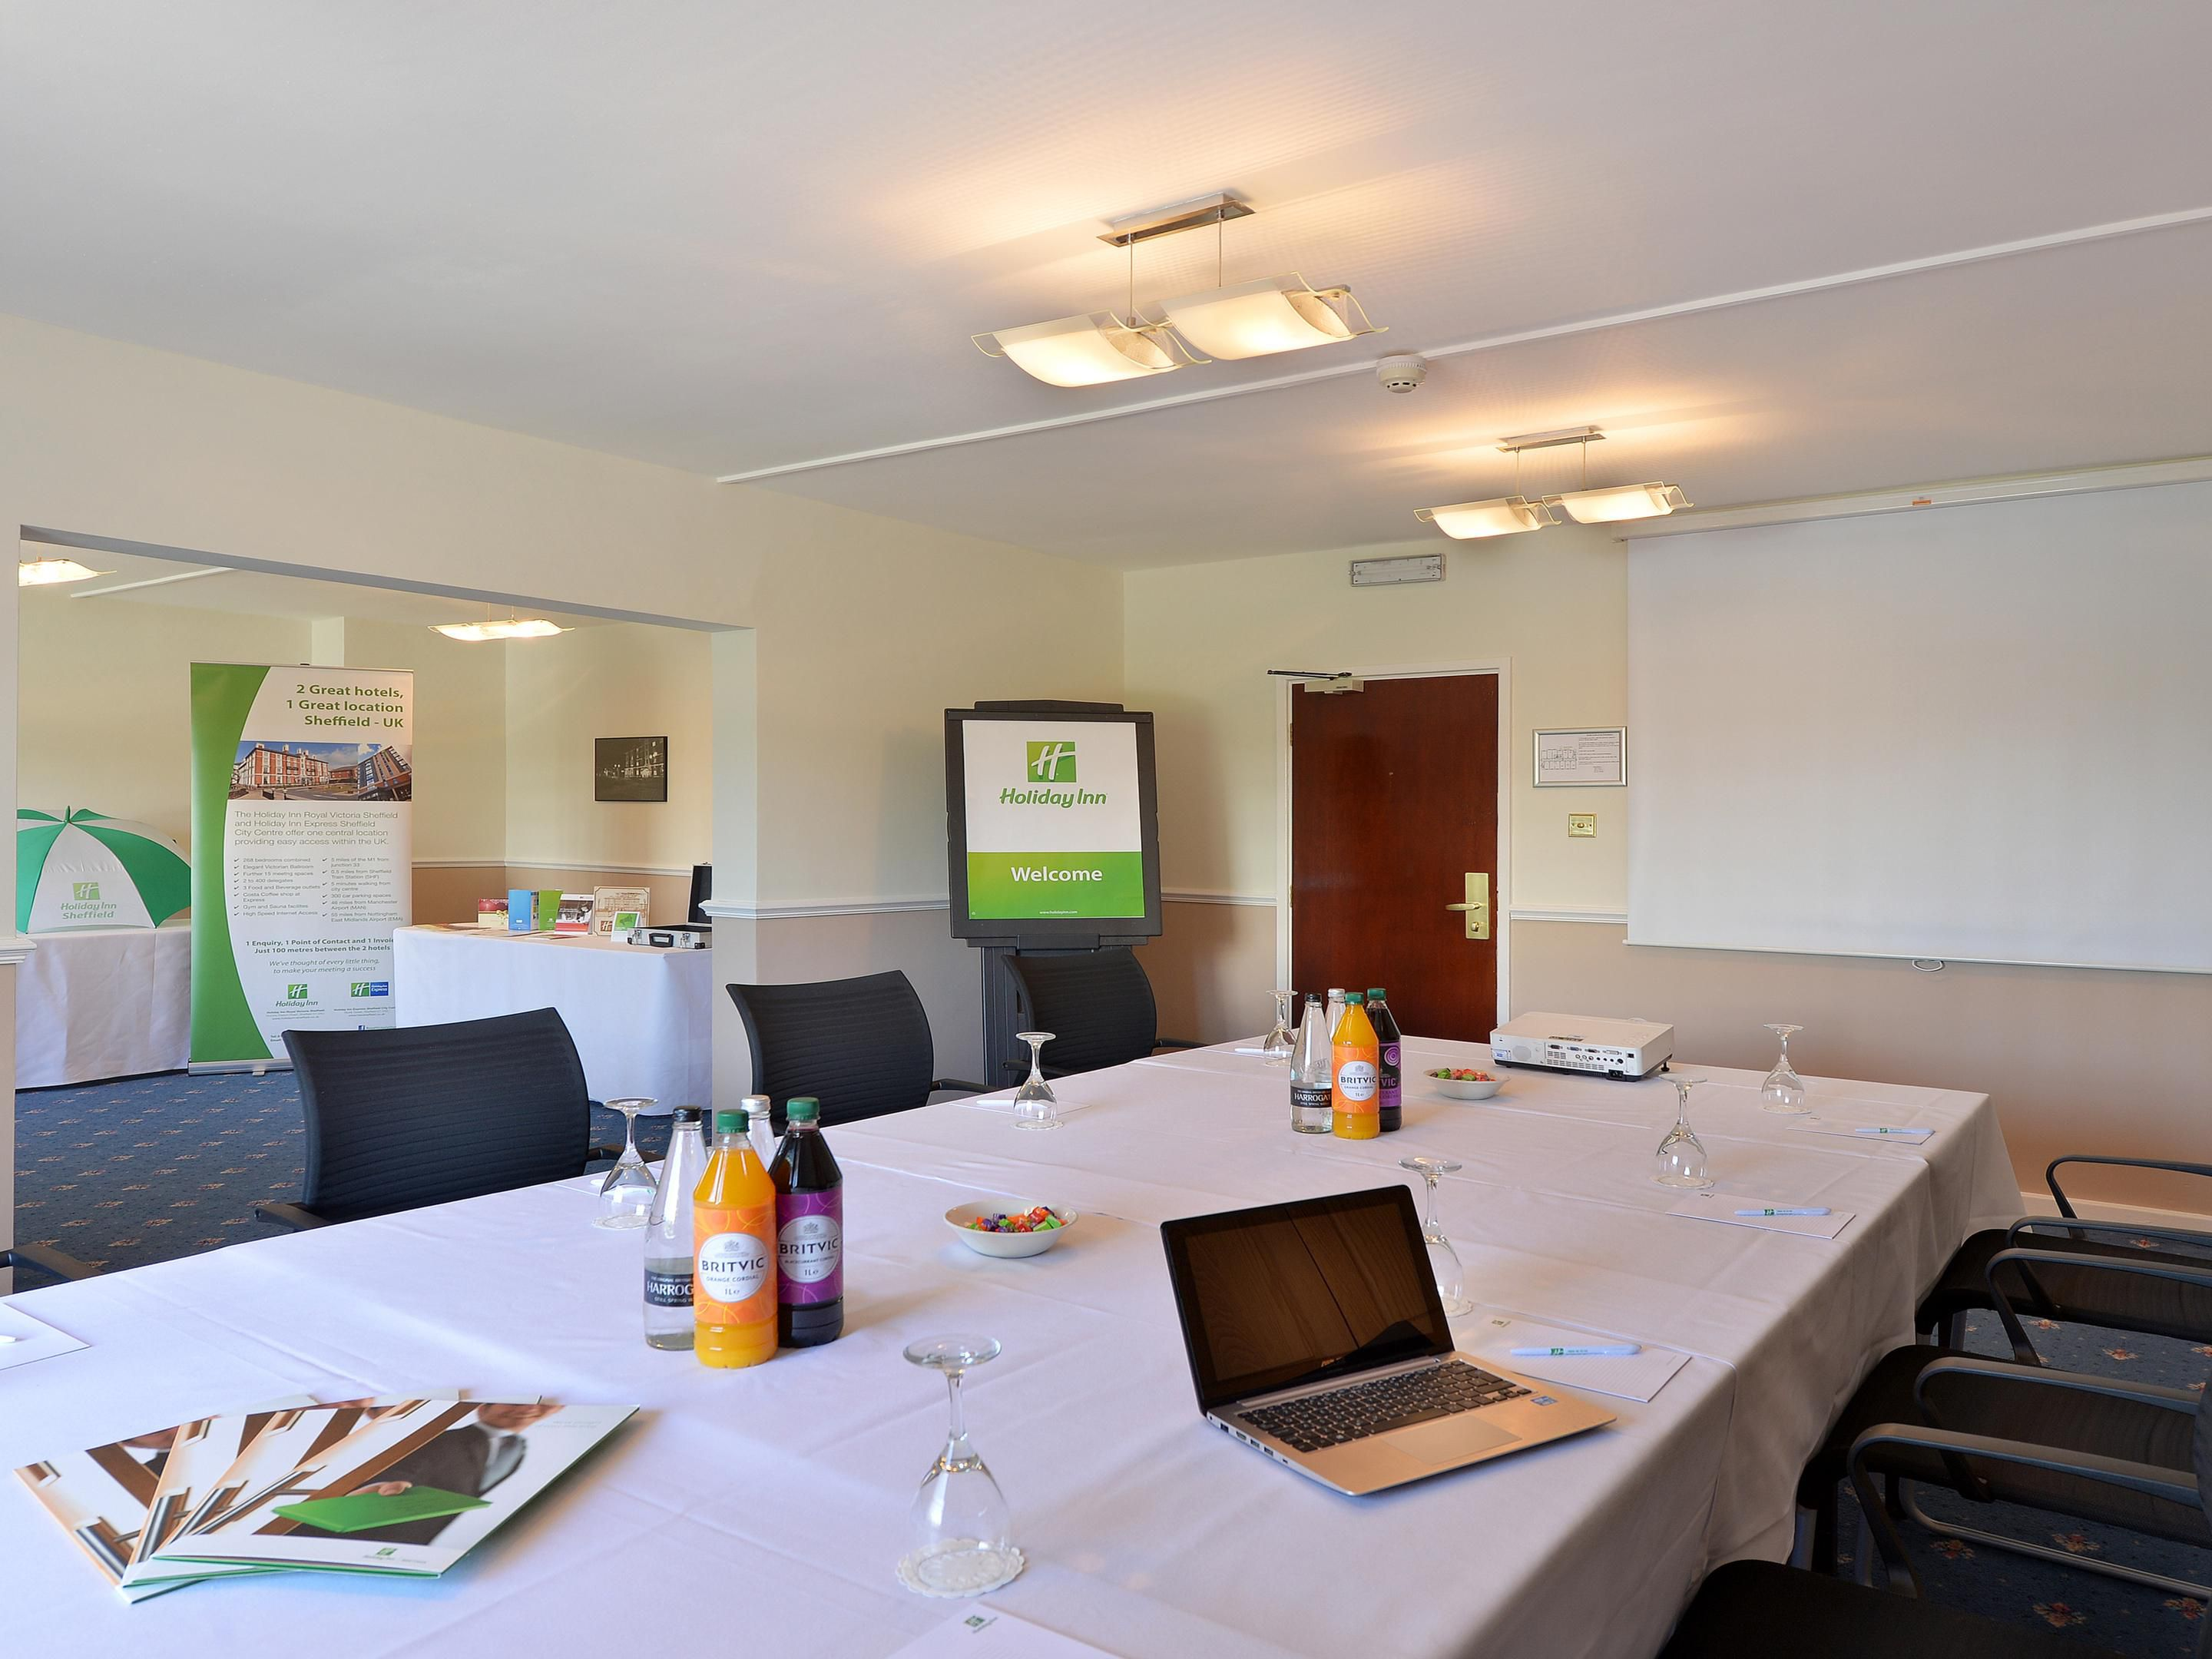 Spacious board rooms available at the Holiday Inn Royal Victoria